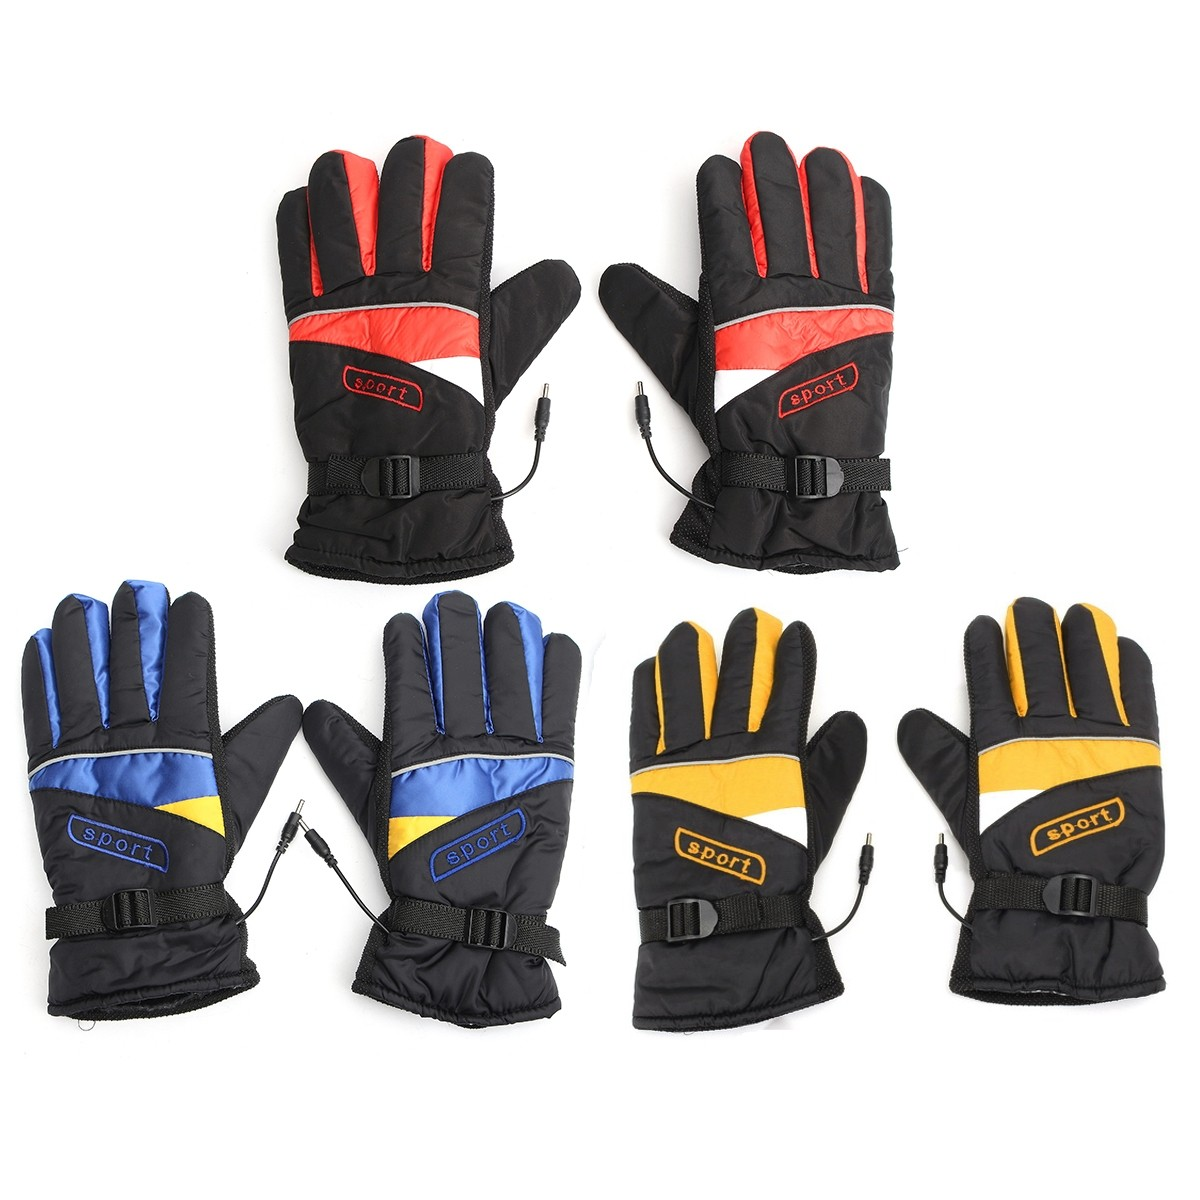 12V/48V/60V Waterproof Electric Heated Gloves Winter Inner Warmer Motorcycle Ski Racing